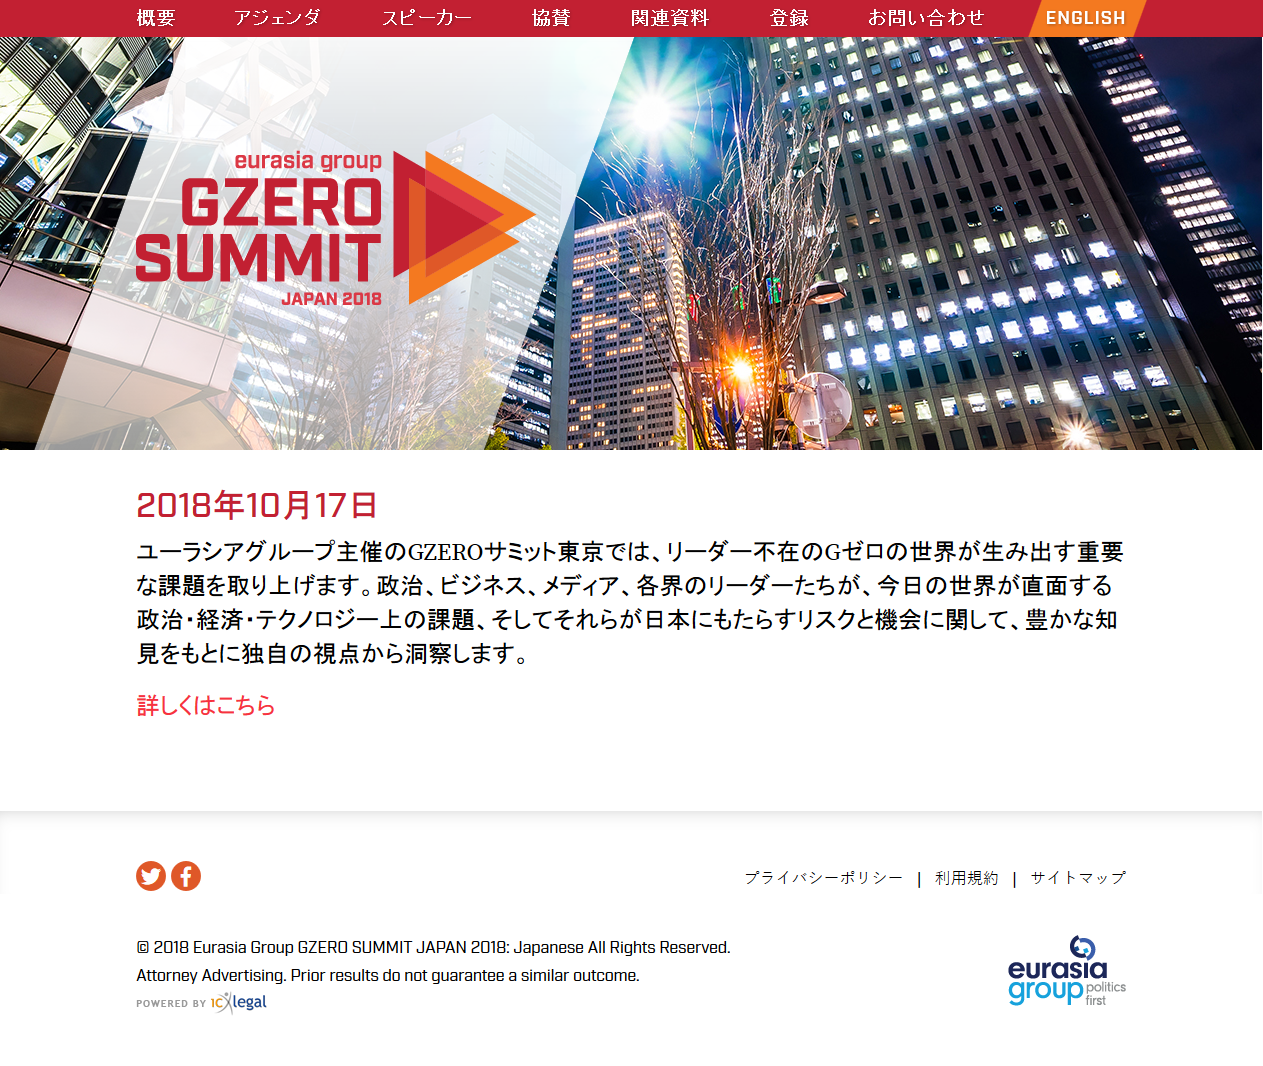 GZERO Summit (Bilingual)